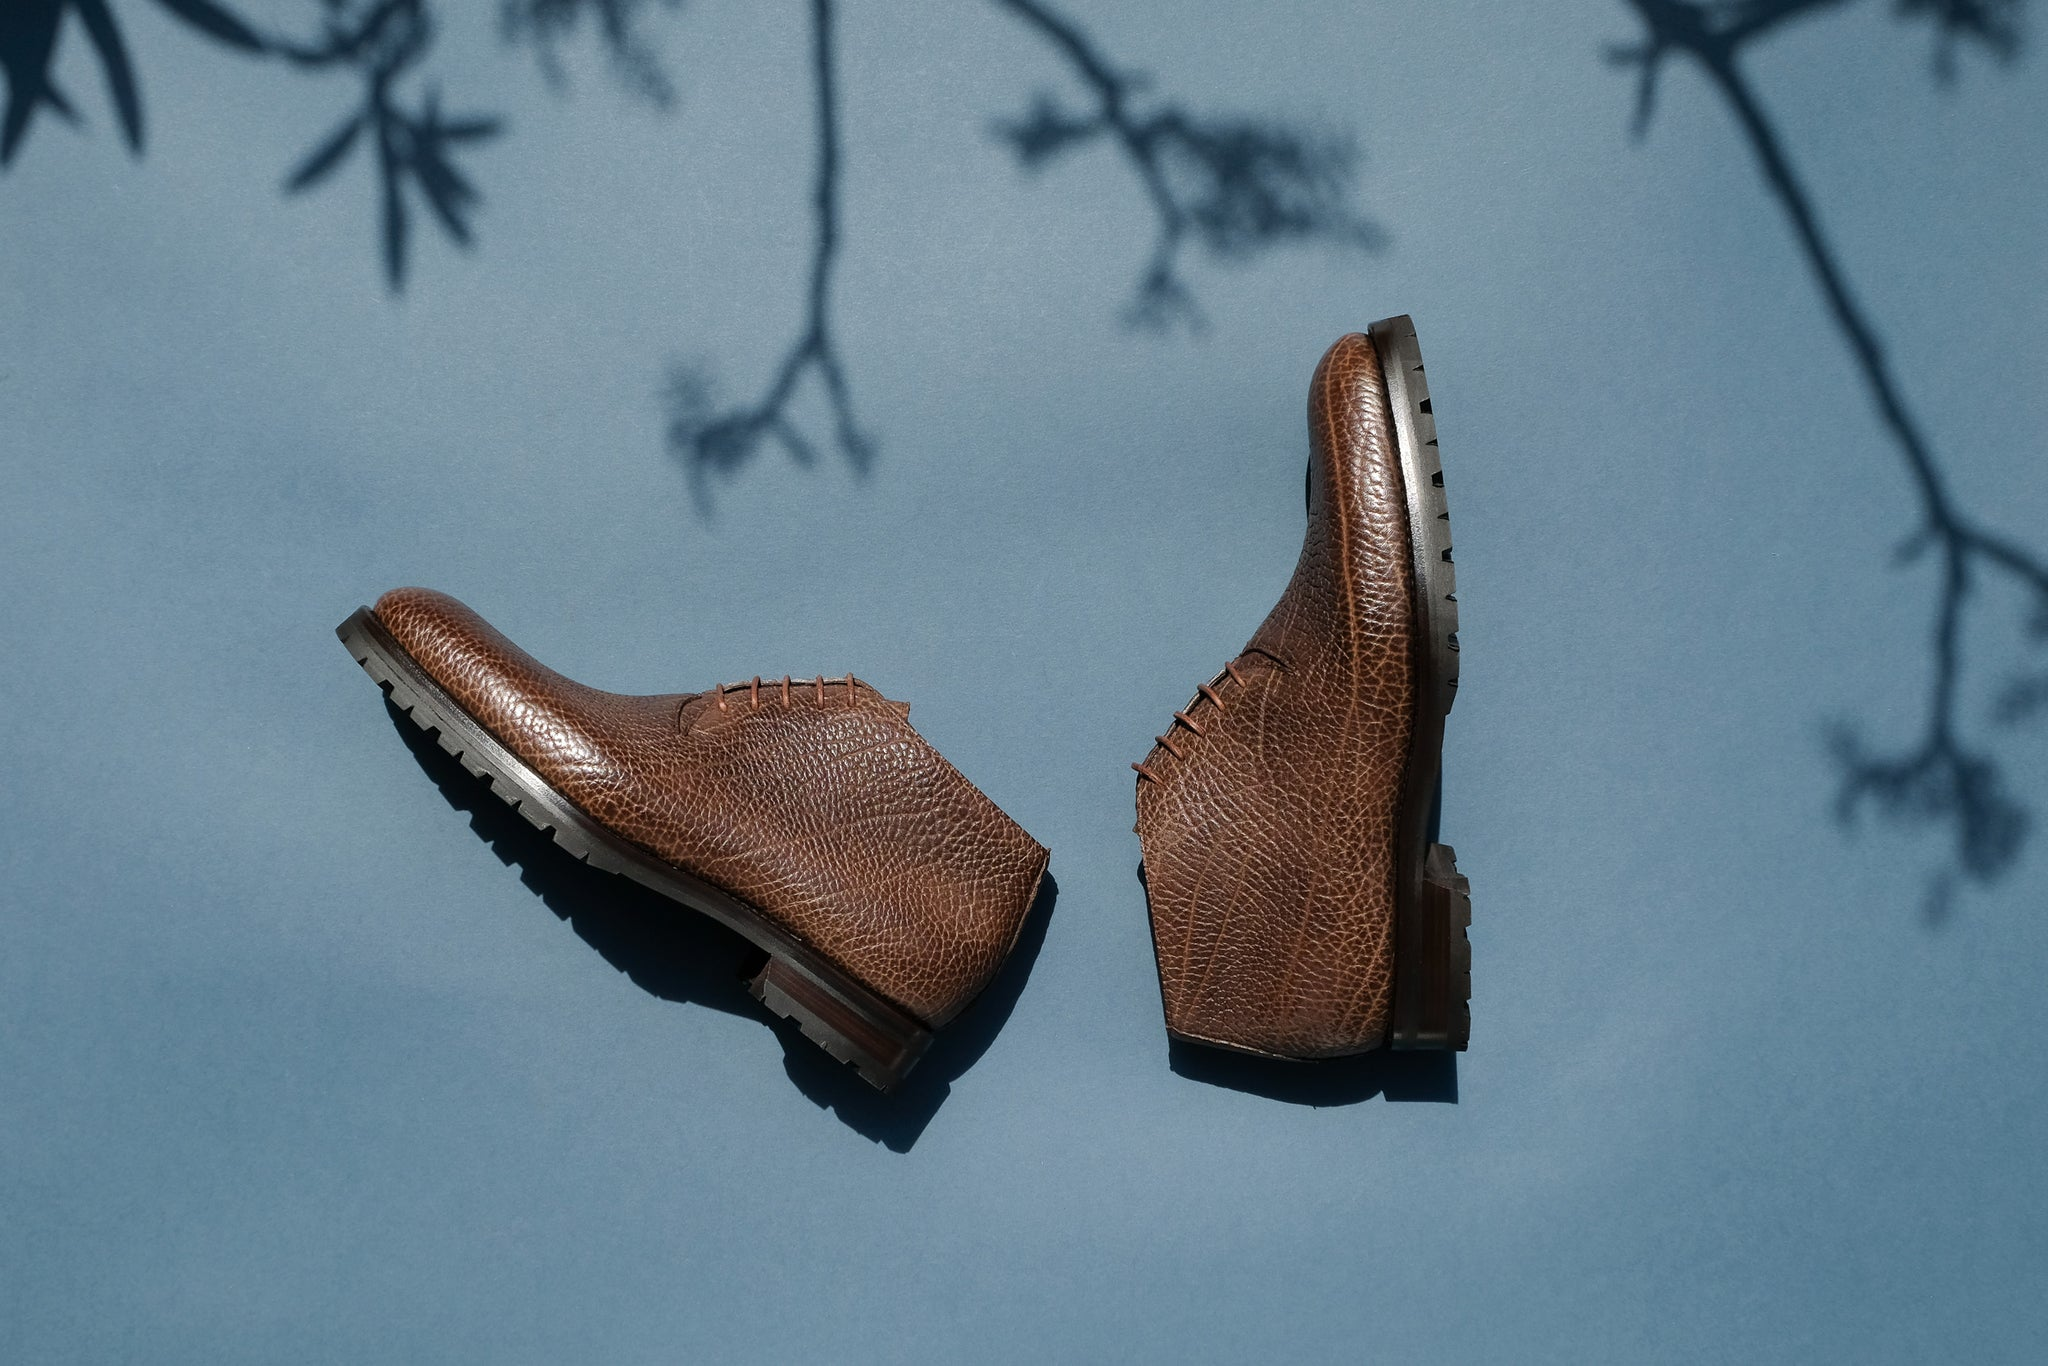 Zonkey Boot hand welted wholecut derby boots from Shrunken Bull leather with commando rubber soles